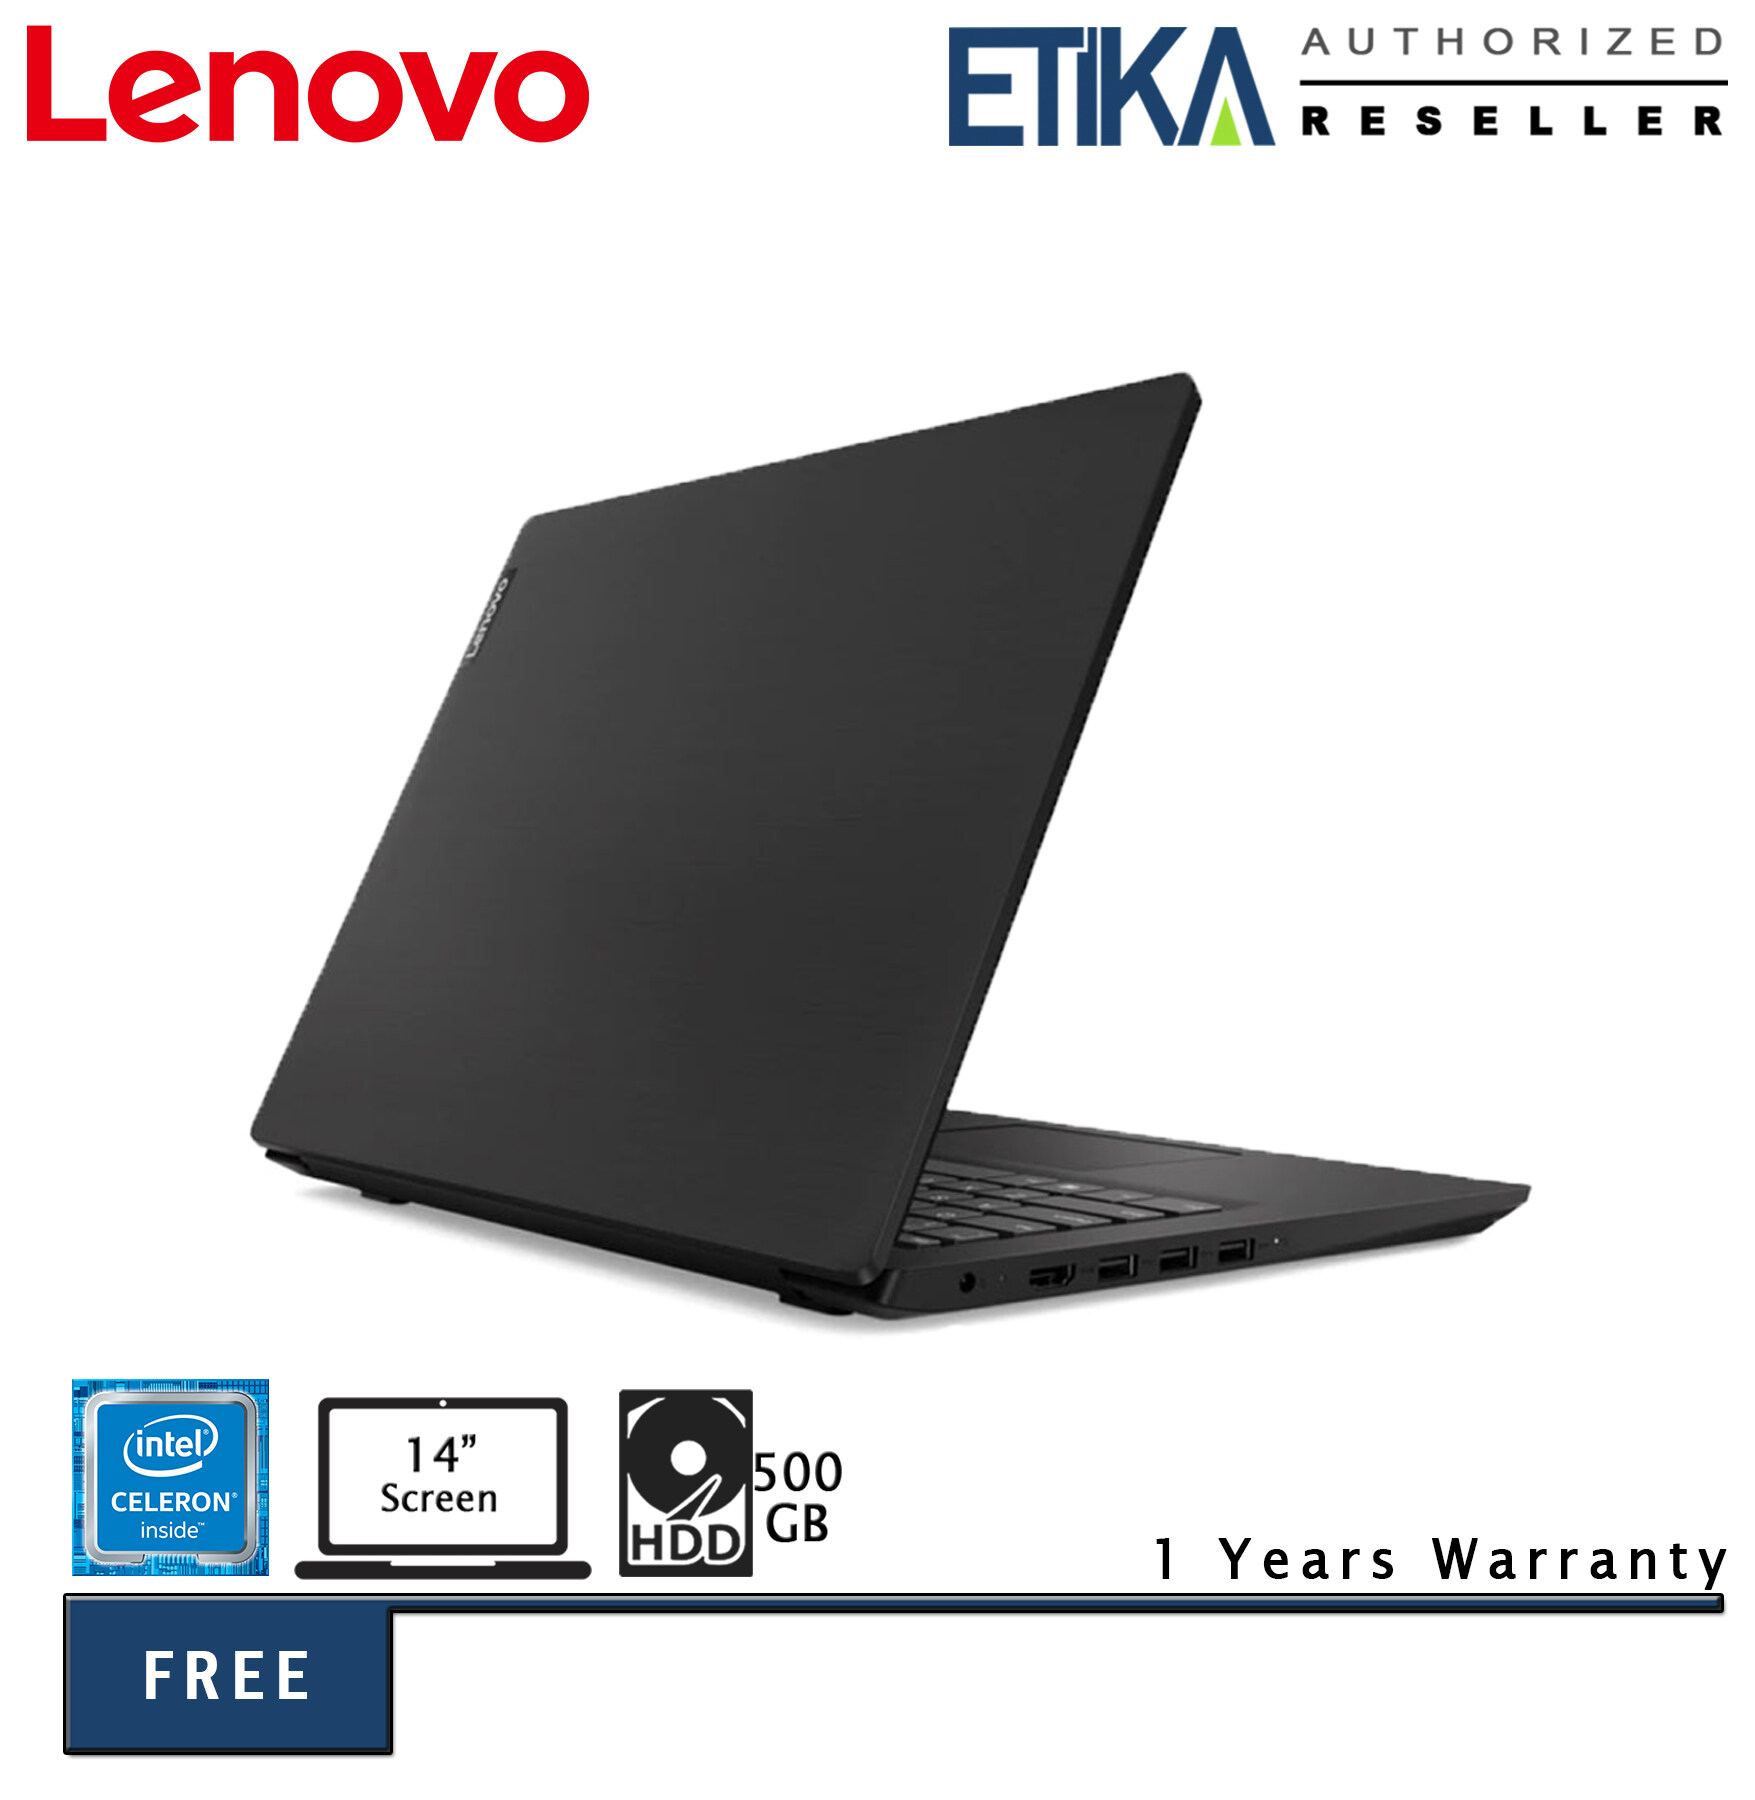 Lenovo S145-14IWL 81MU001VMJ 14  HD Slim Laptop (Celeron 4205U/ 4GB/ 500GB/ Integrated/ W10) - Free Carrying Case Malaysia